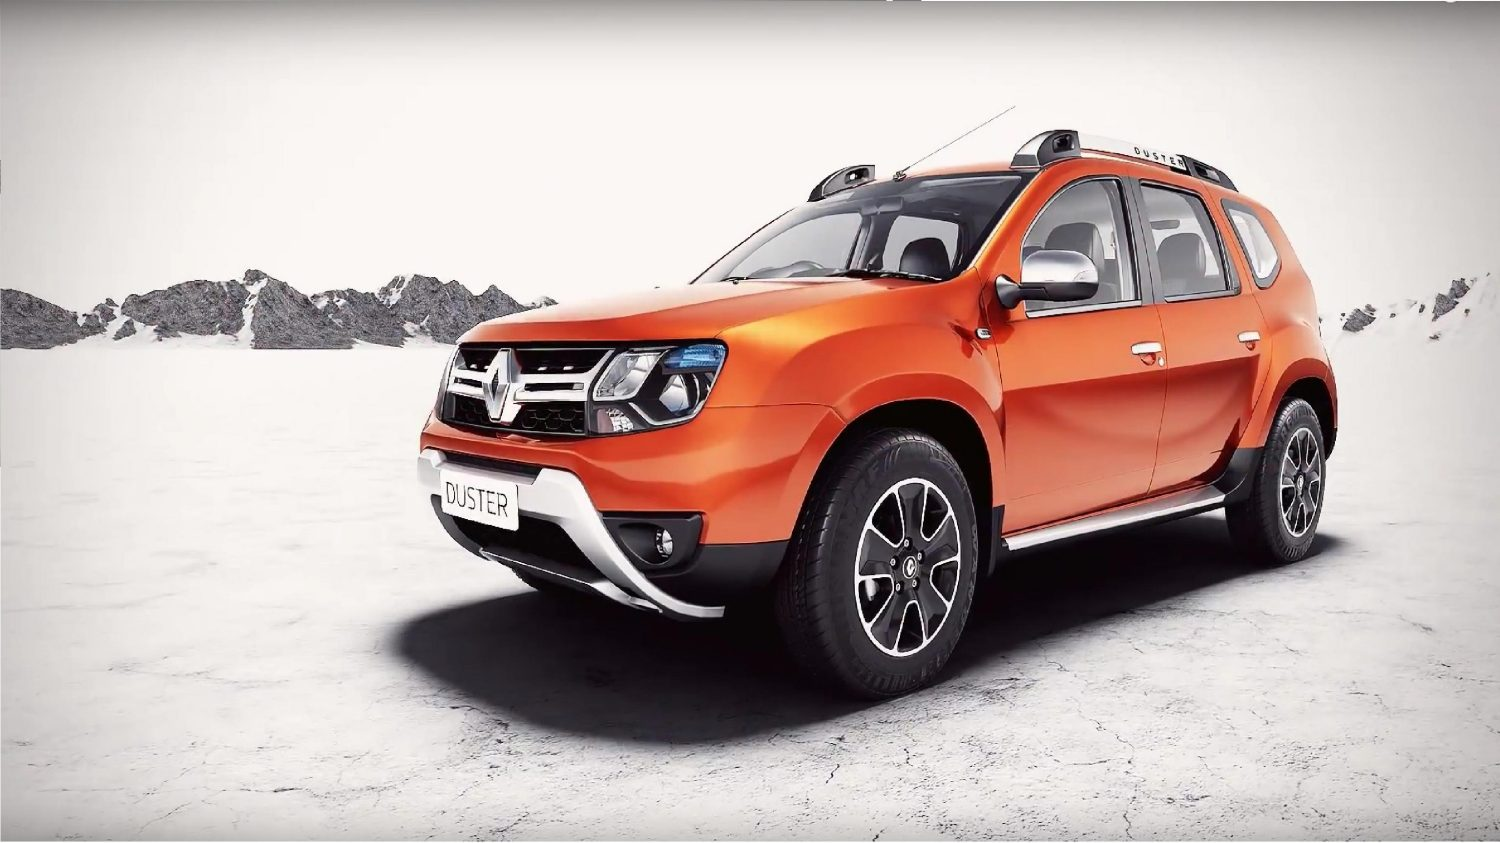 Duster - Best SUVs under Rs 12 lakh